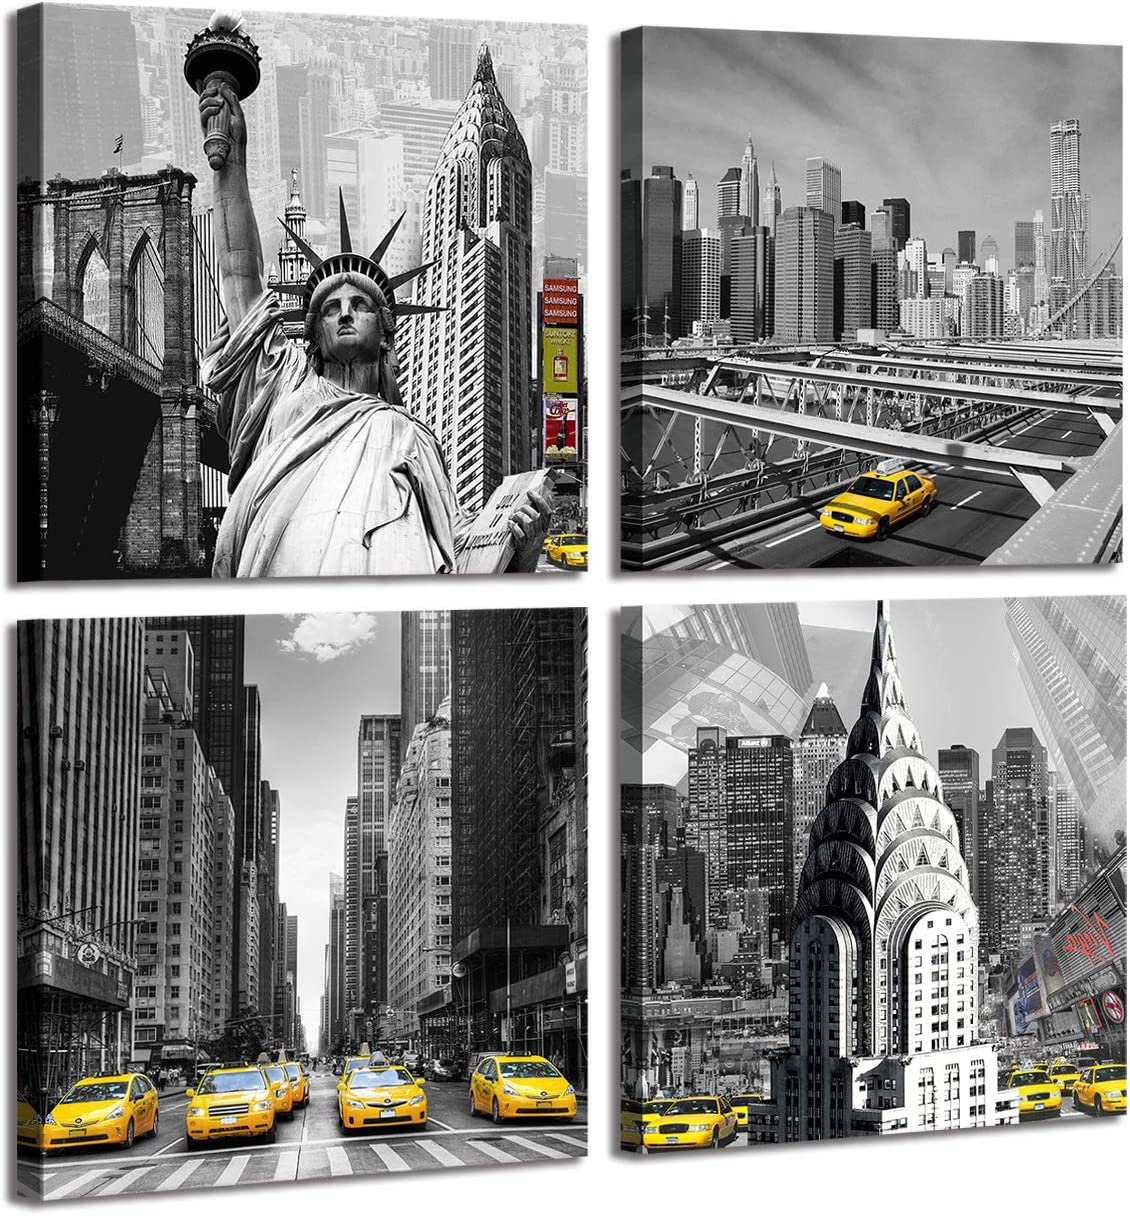 4-Panel Canvas Print Wall Art Set - New York City Statue Of Liberty Historic Buildings Statue in Black and White - Yellow Taxis in Selective Color, 12x12 Inch